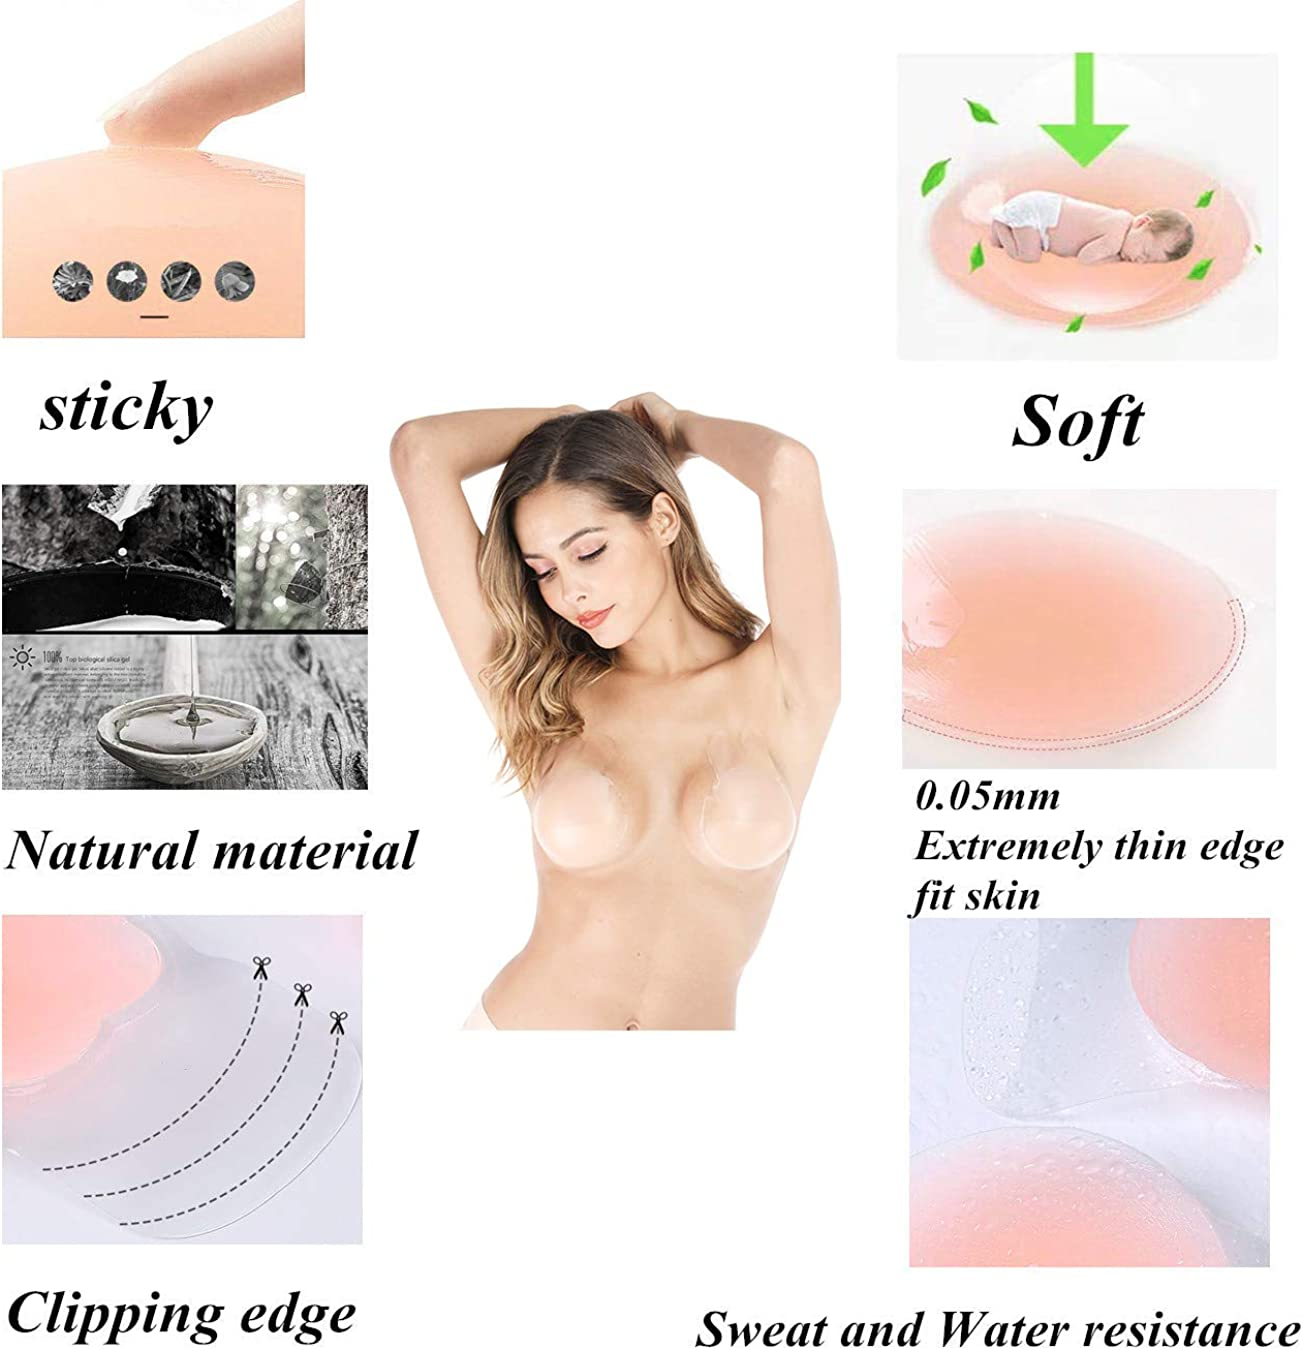 Longwu Invisible Self Adhesive Push up Sticky Stick on Rabbit Bra Strapless Bra Breast Lift Tape Pasties Petals 2 Pairs Reusable Adhesive Silicone Breast Lifting NippleCovers